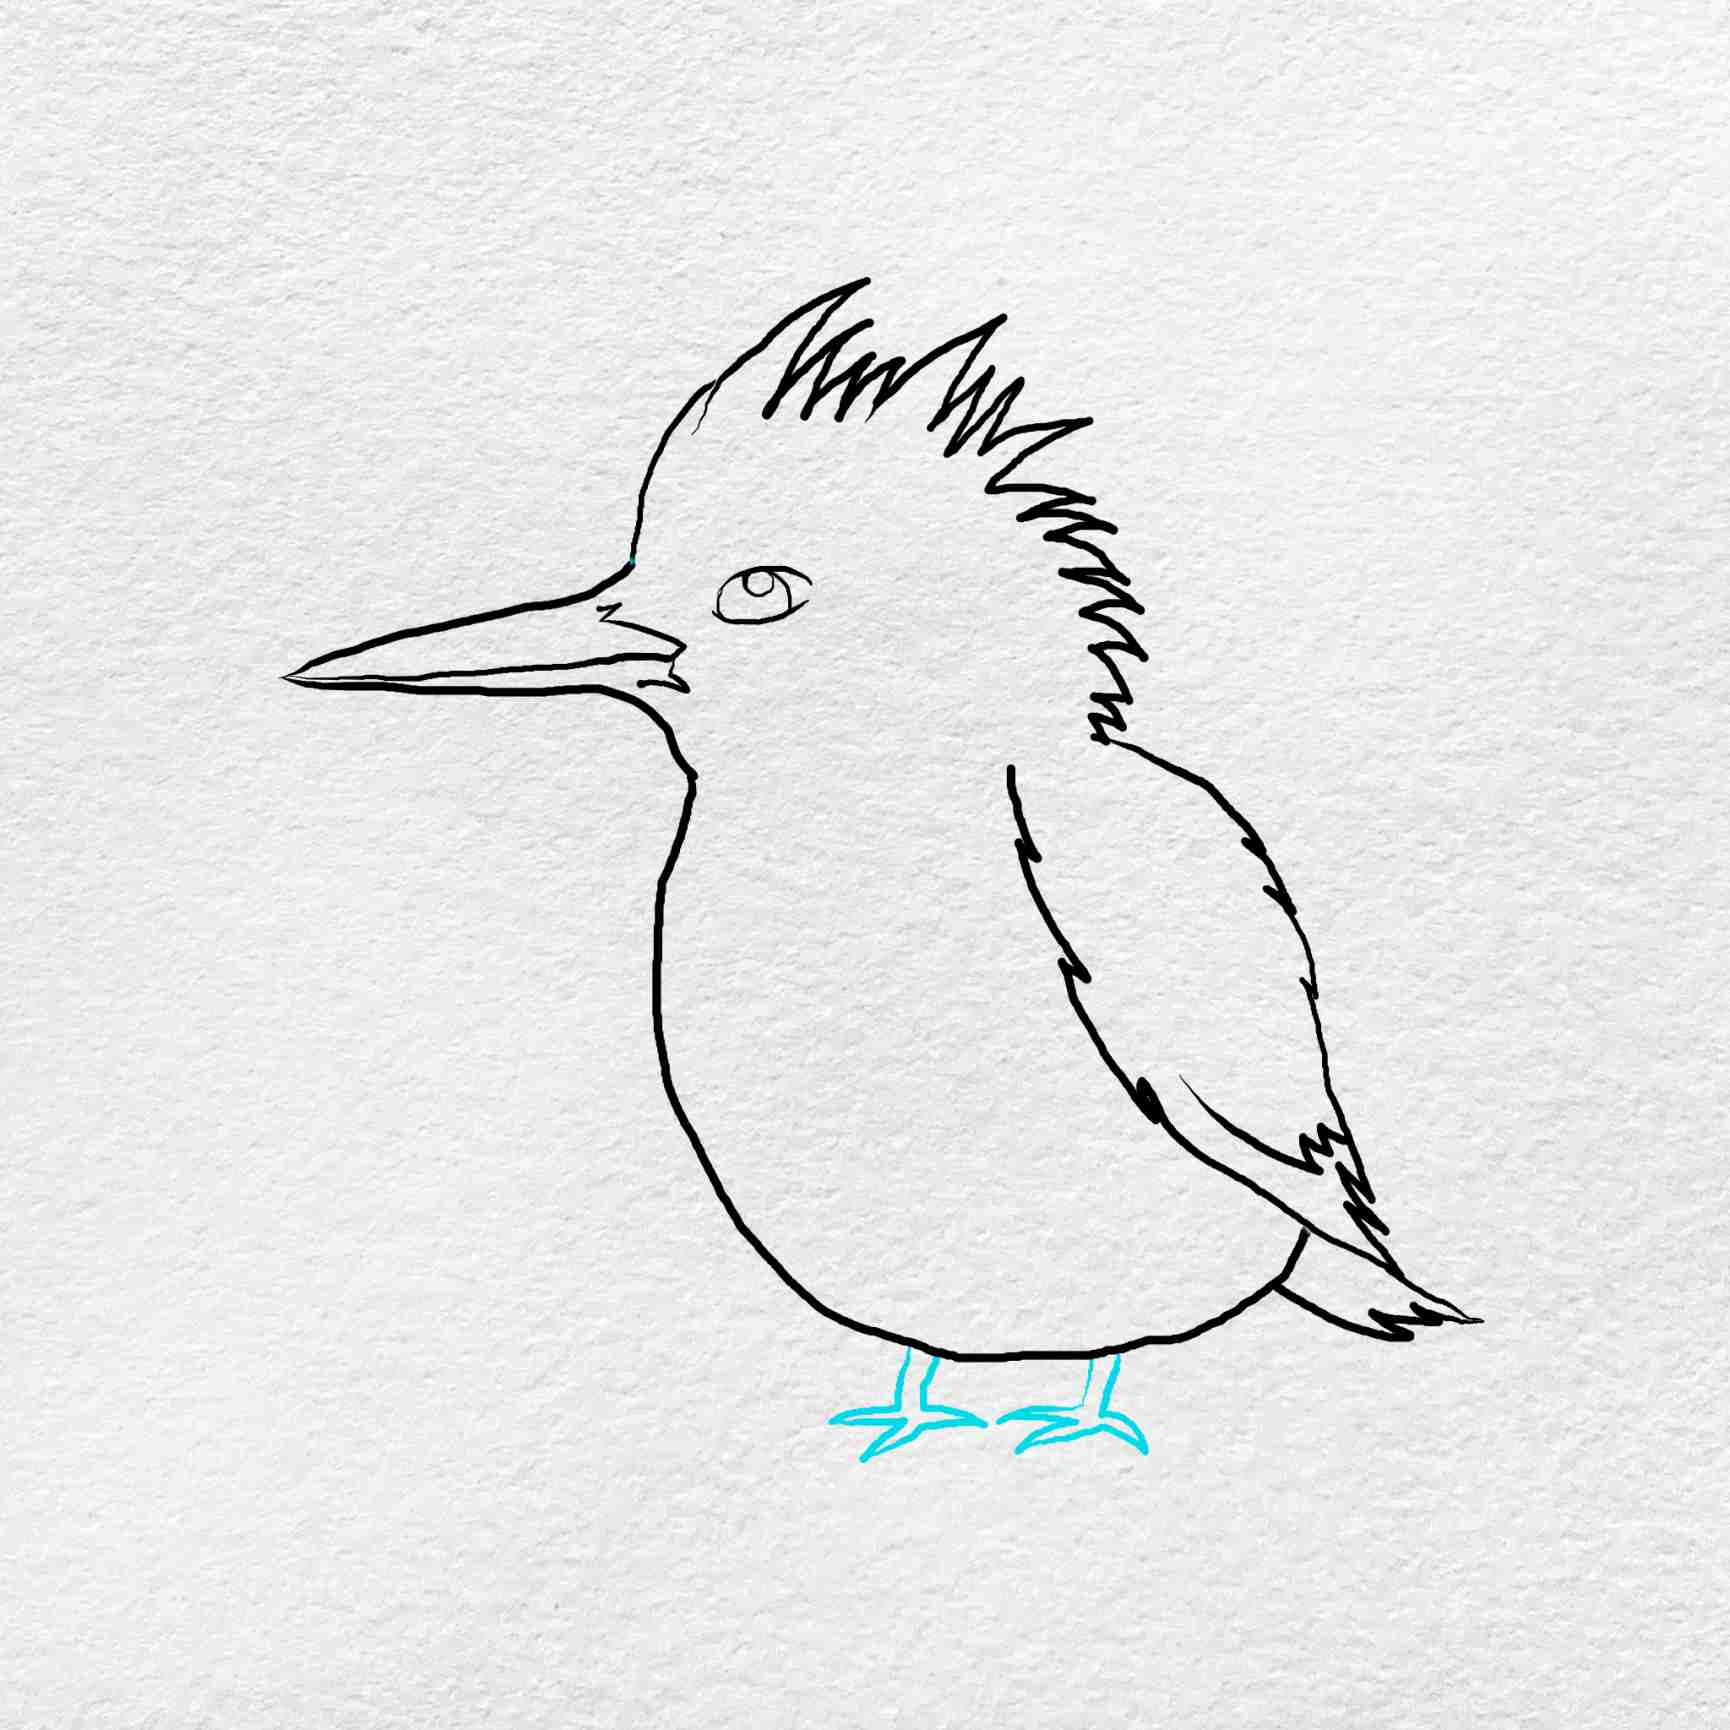 How To Draw Kingfisher: Step 5